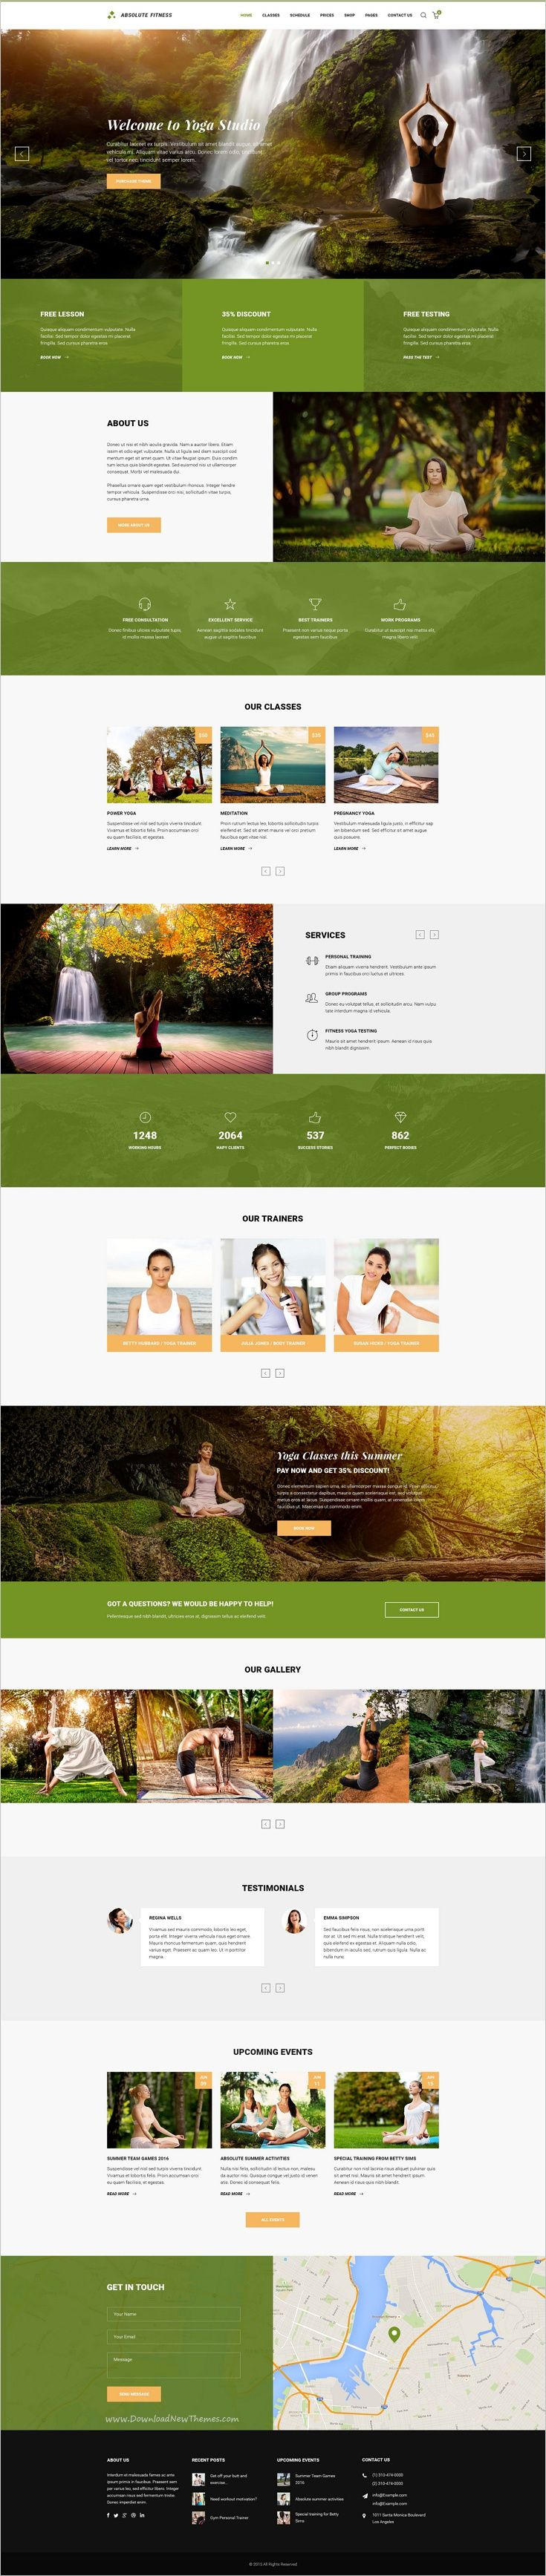 Best 25 personal trainer website ideas on pinterest best web absolute fitness psd template 1betcityfo Images